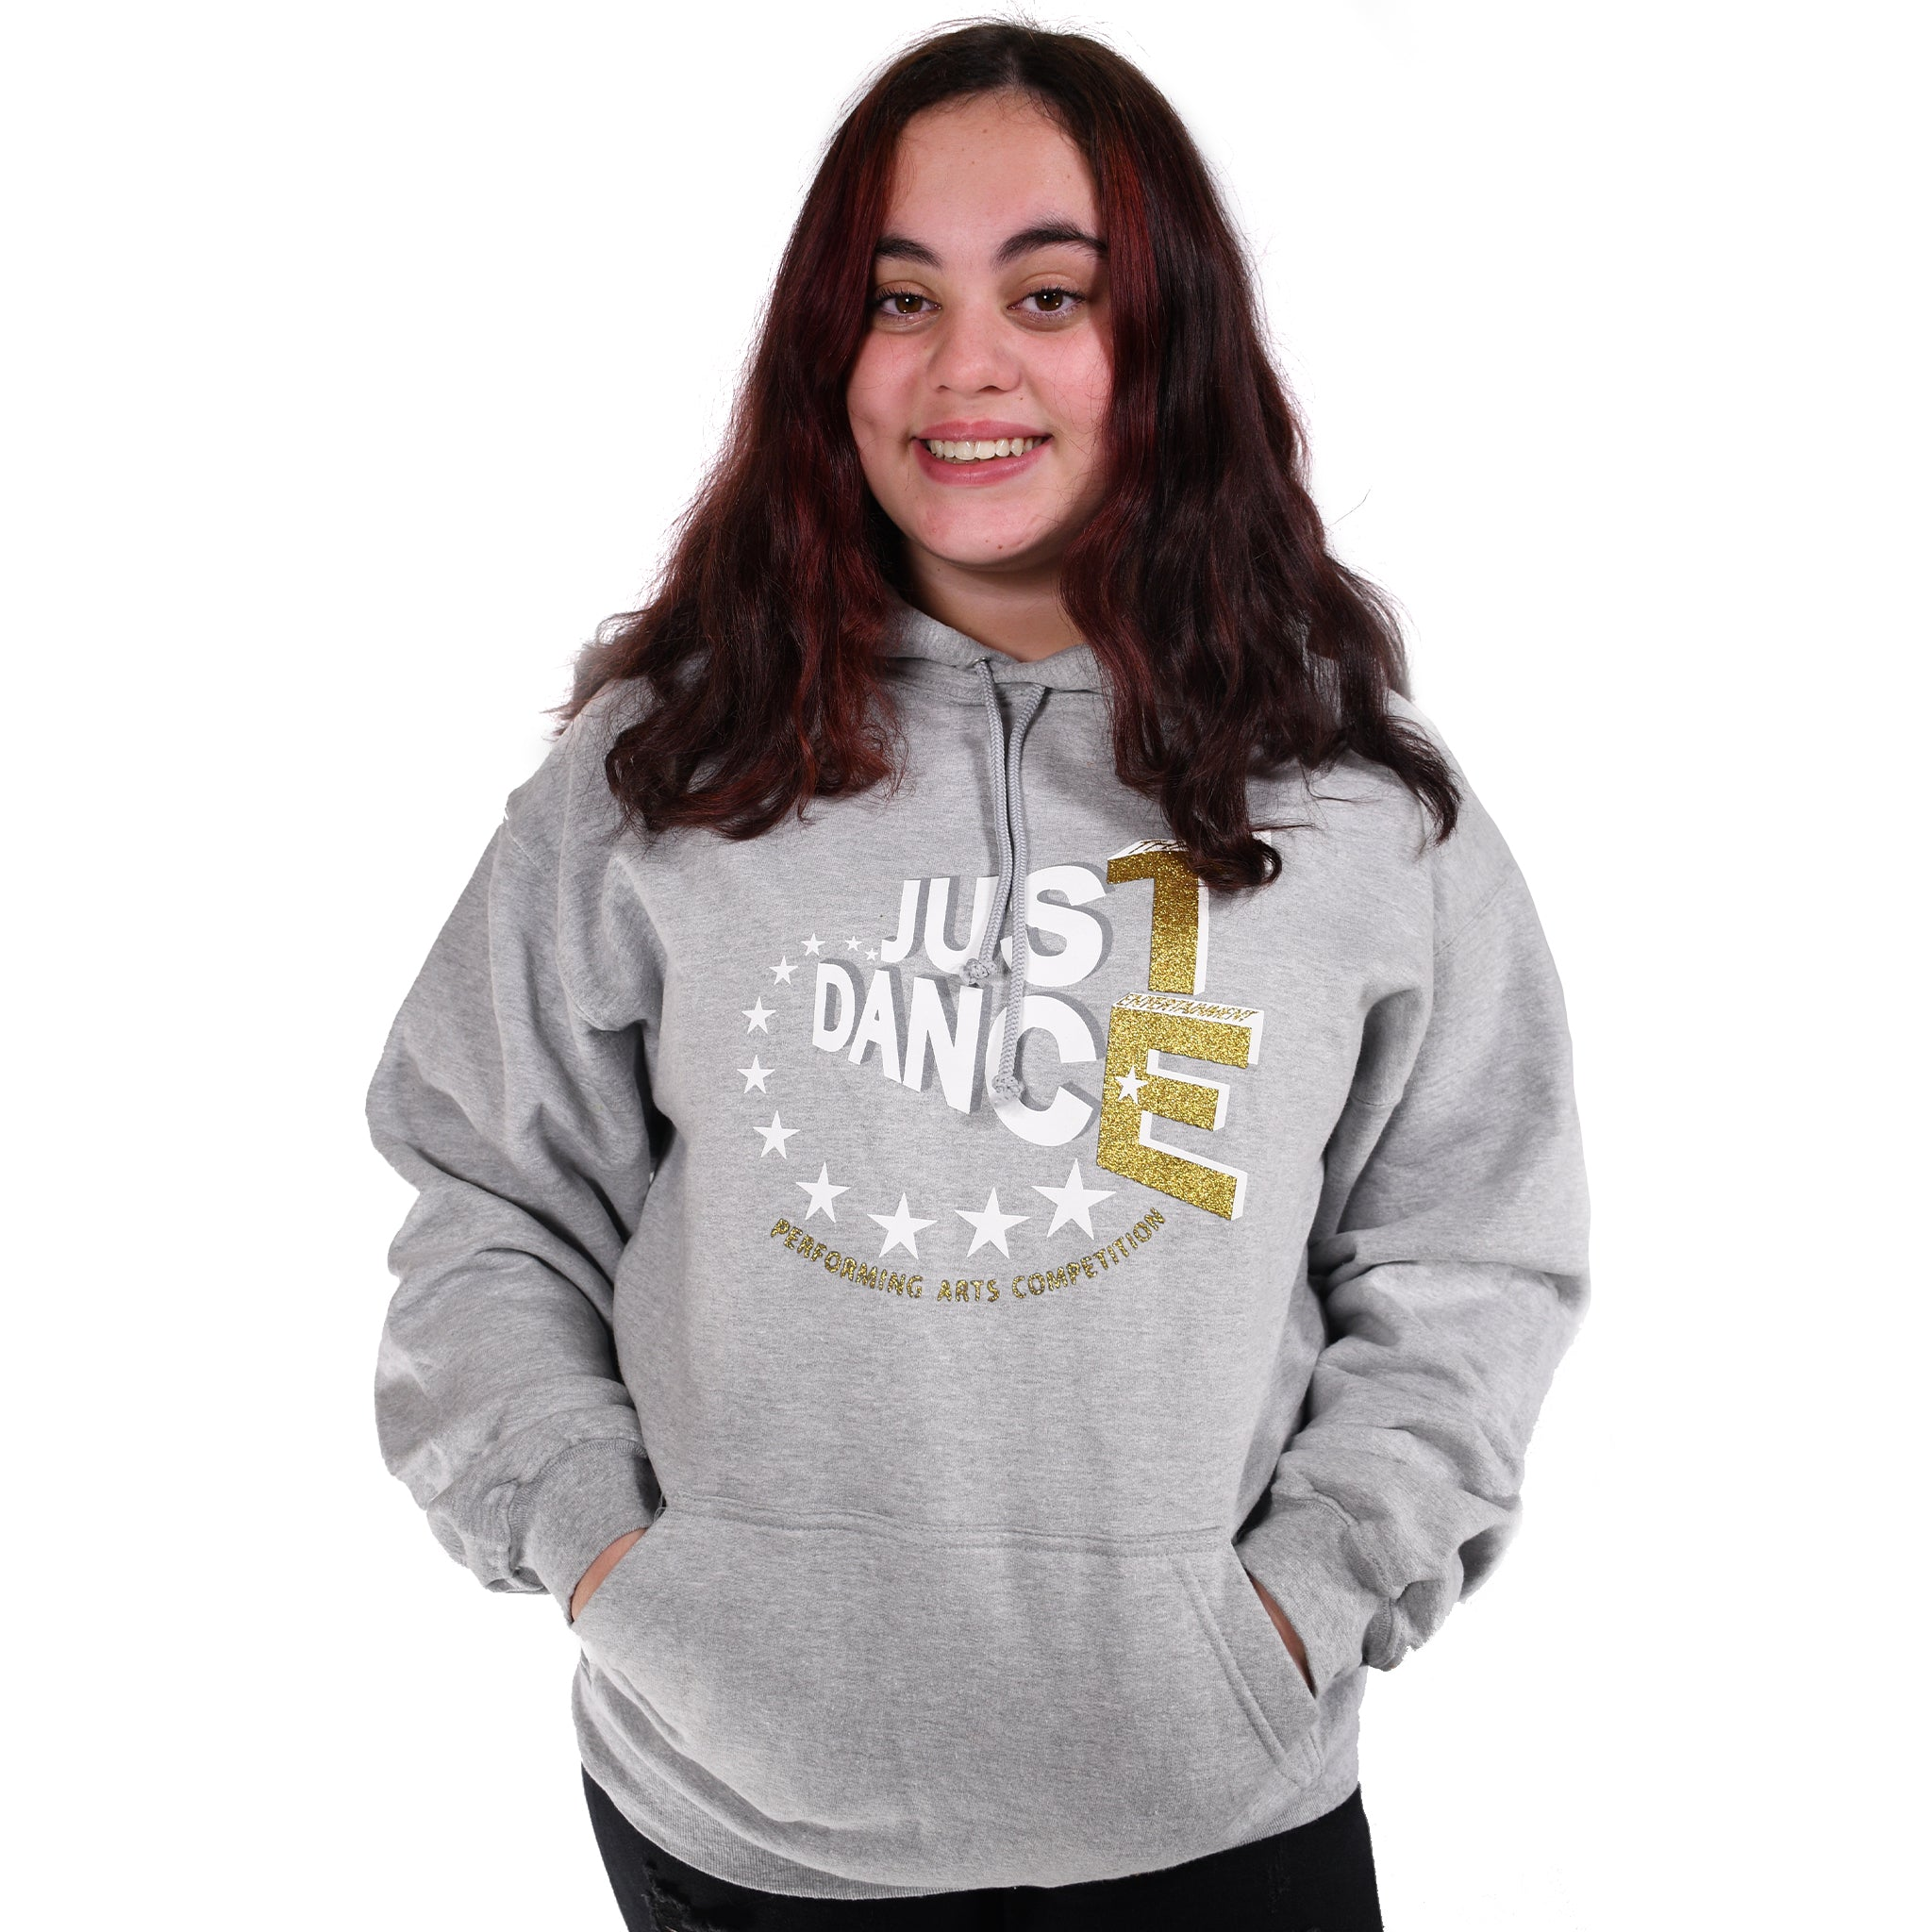 TE Just Dance Hoodie Grey with Gold Sparkles